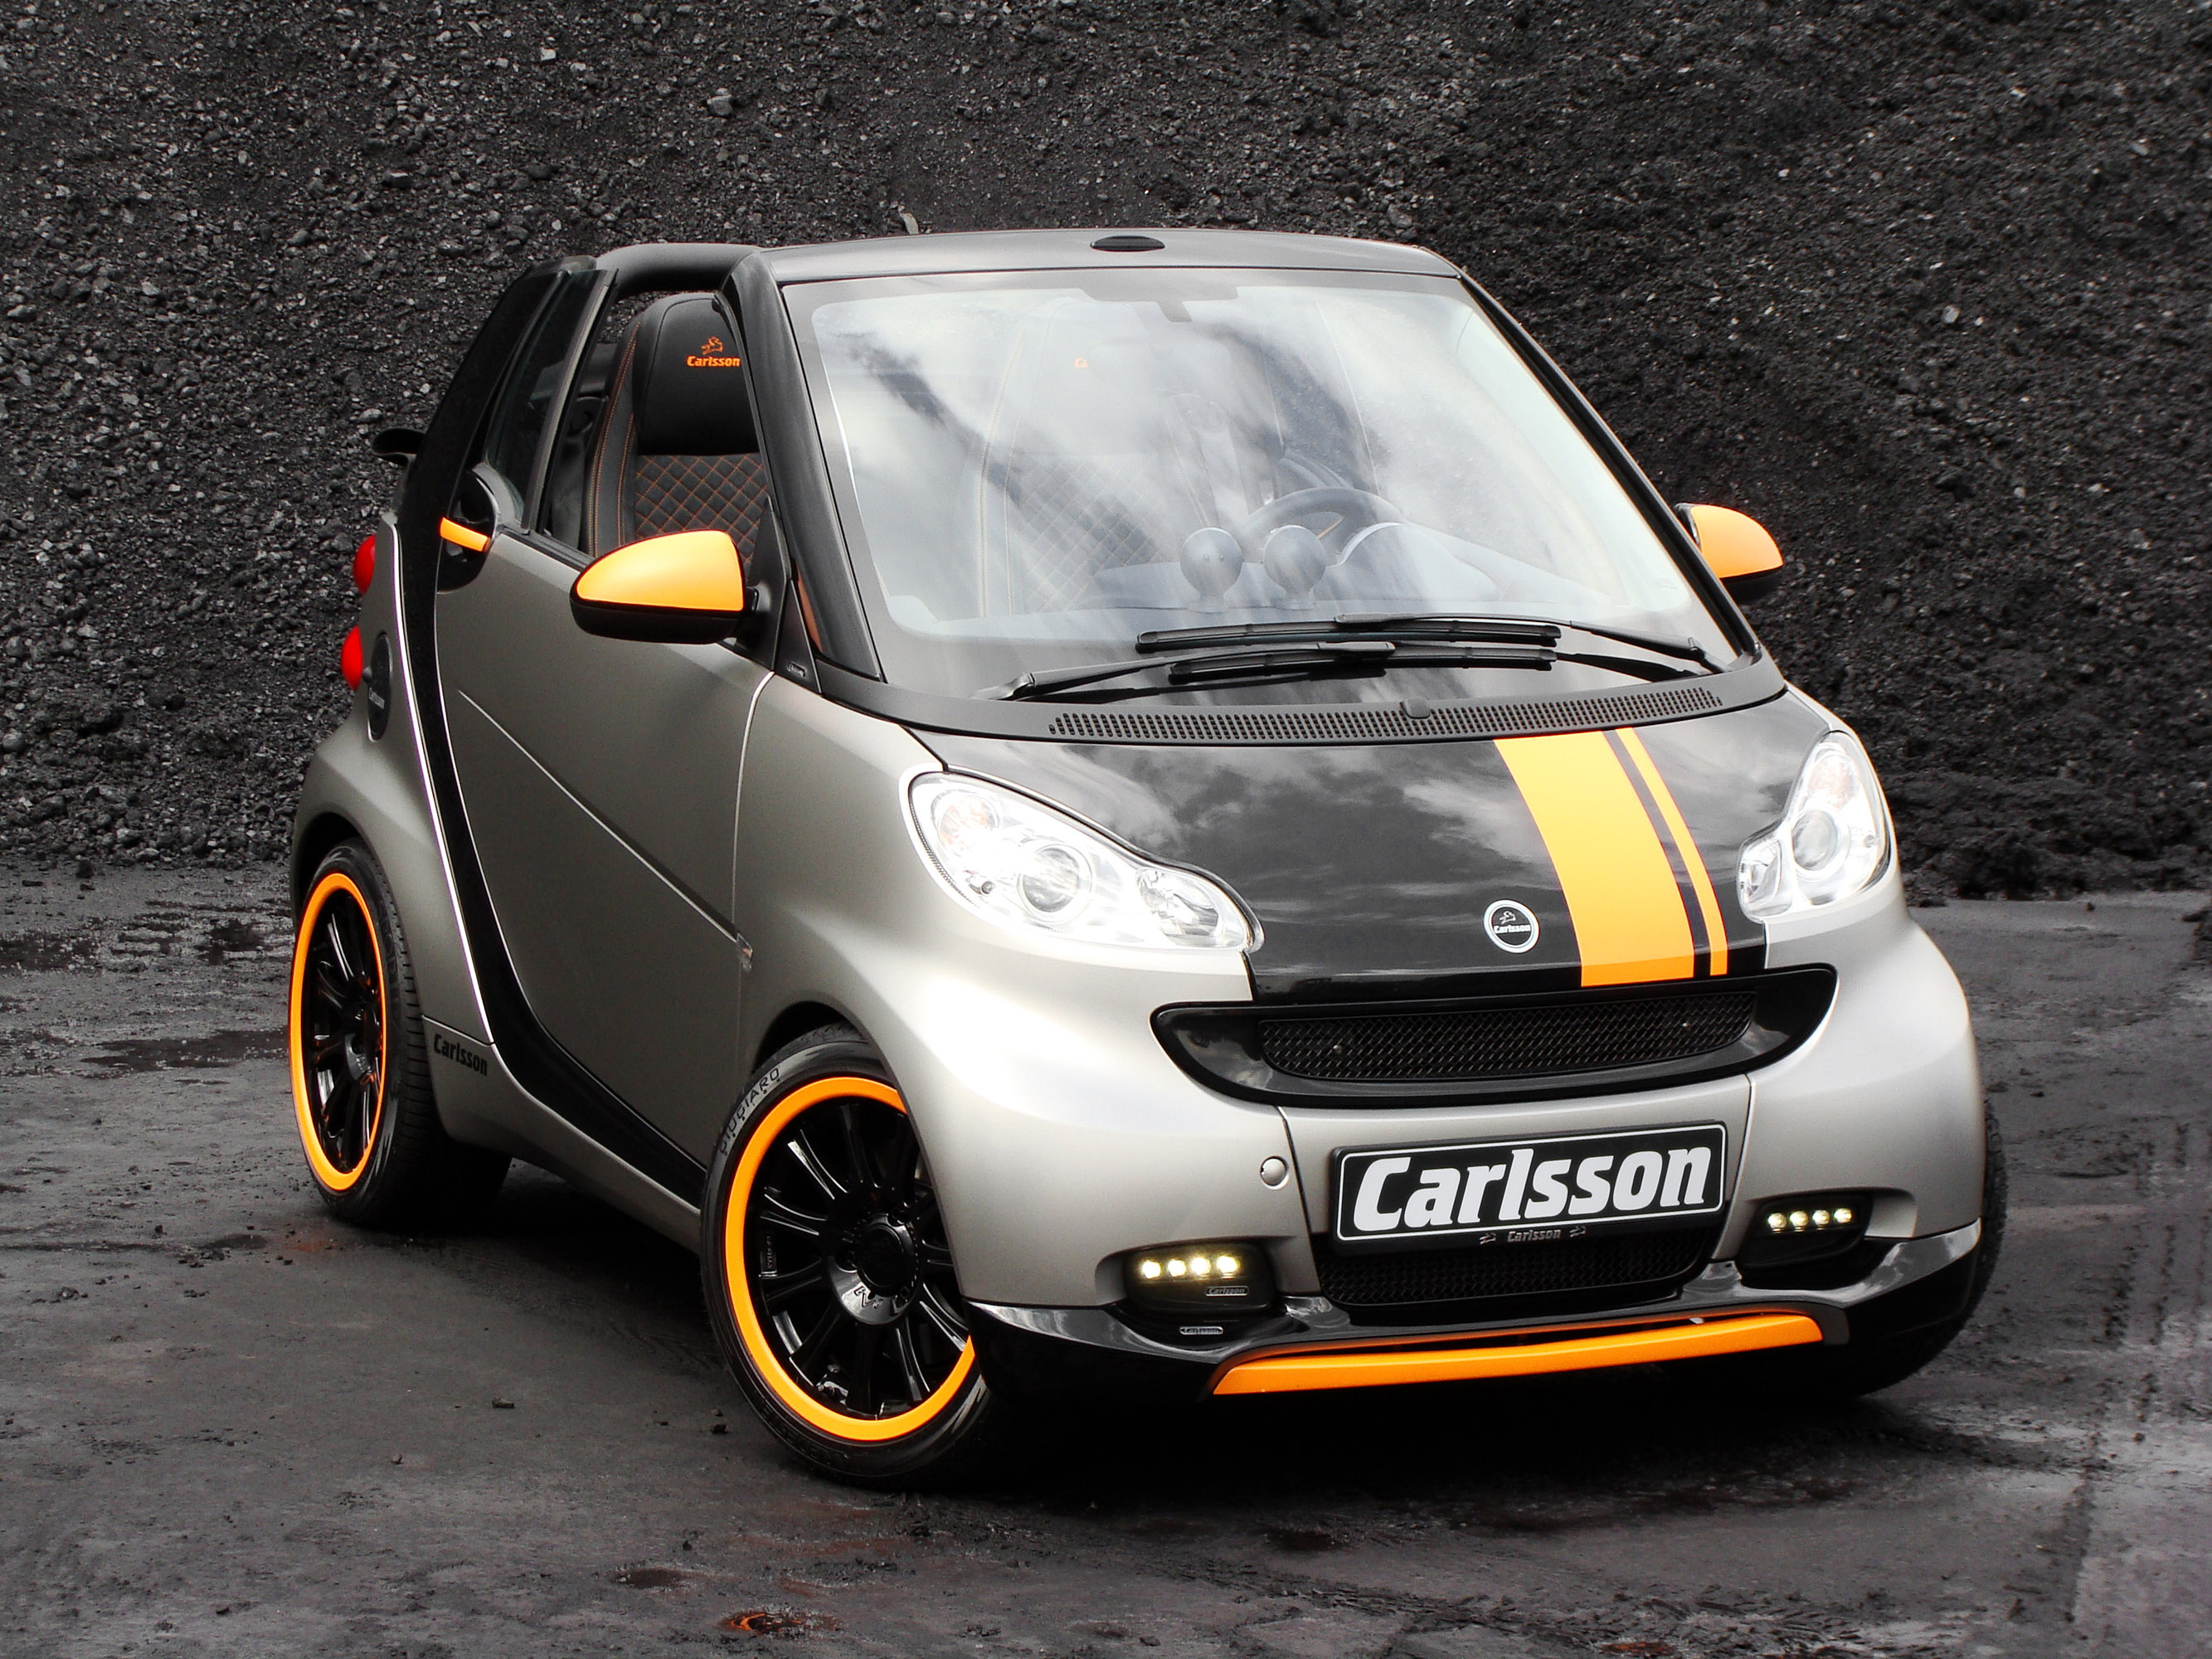 carlsson tuning package for smart fortwo coupe and convertible. Black Bedroom Furniture Sets. Home Design Ideas